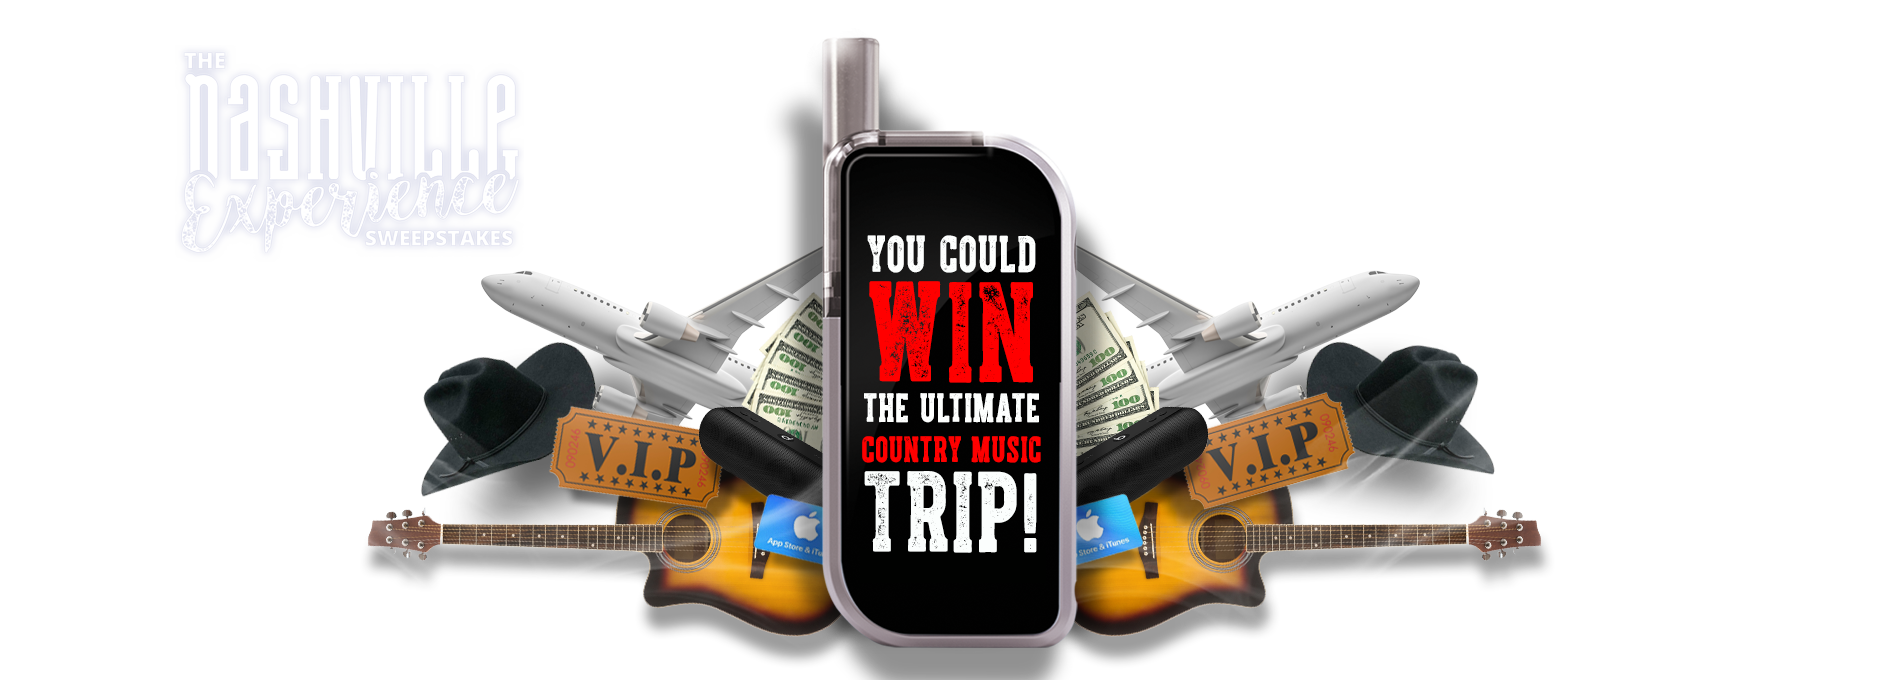 You could win a trip!